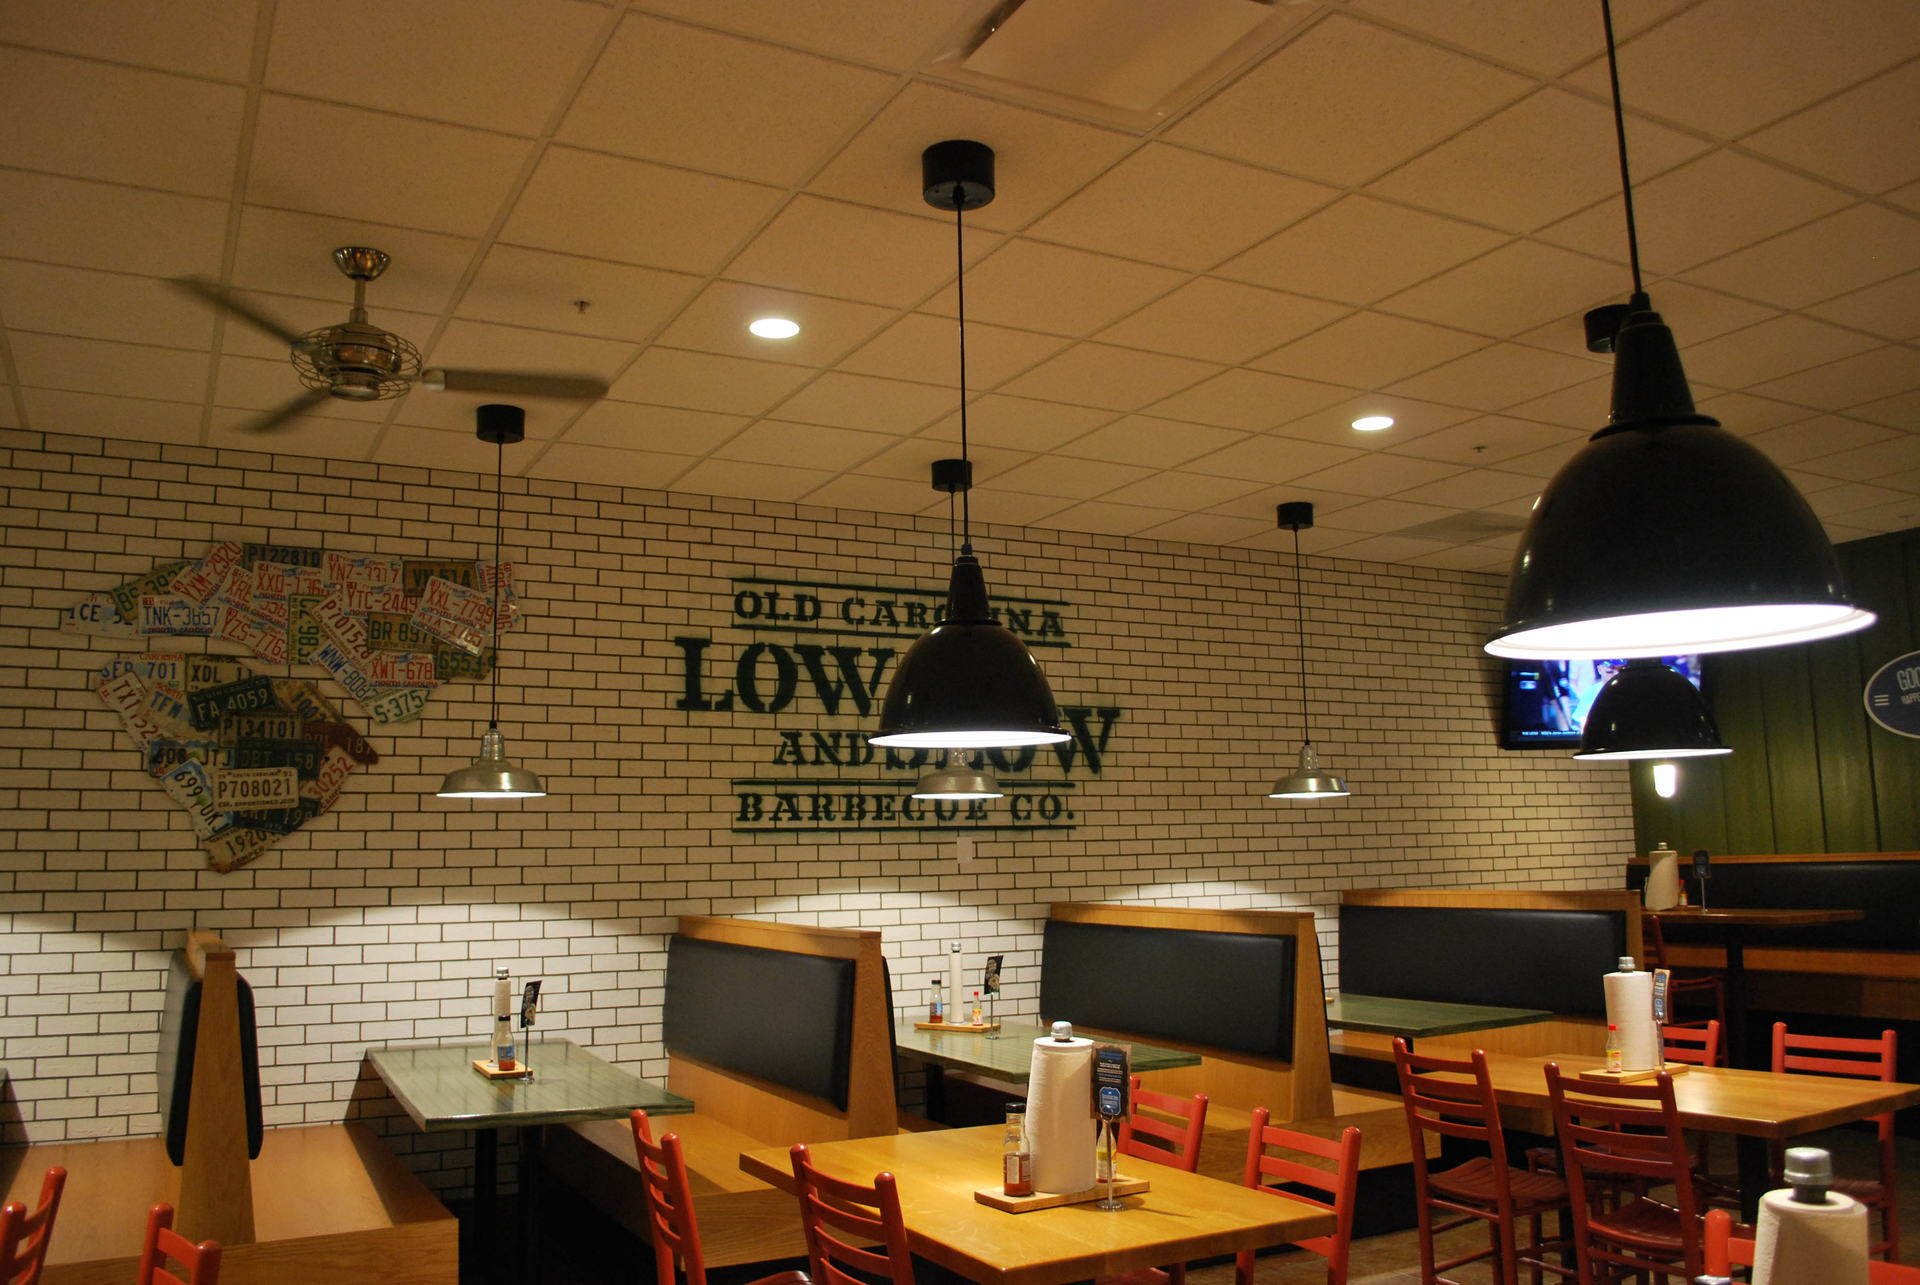 The Downlight Reflector, shown here in the middle of the restaurant shows Bock Lightings stunning lighting products.